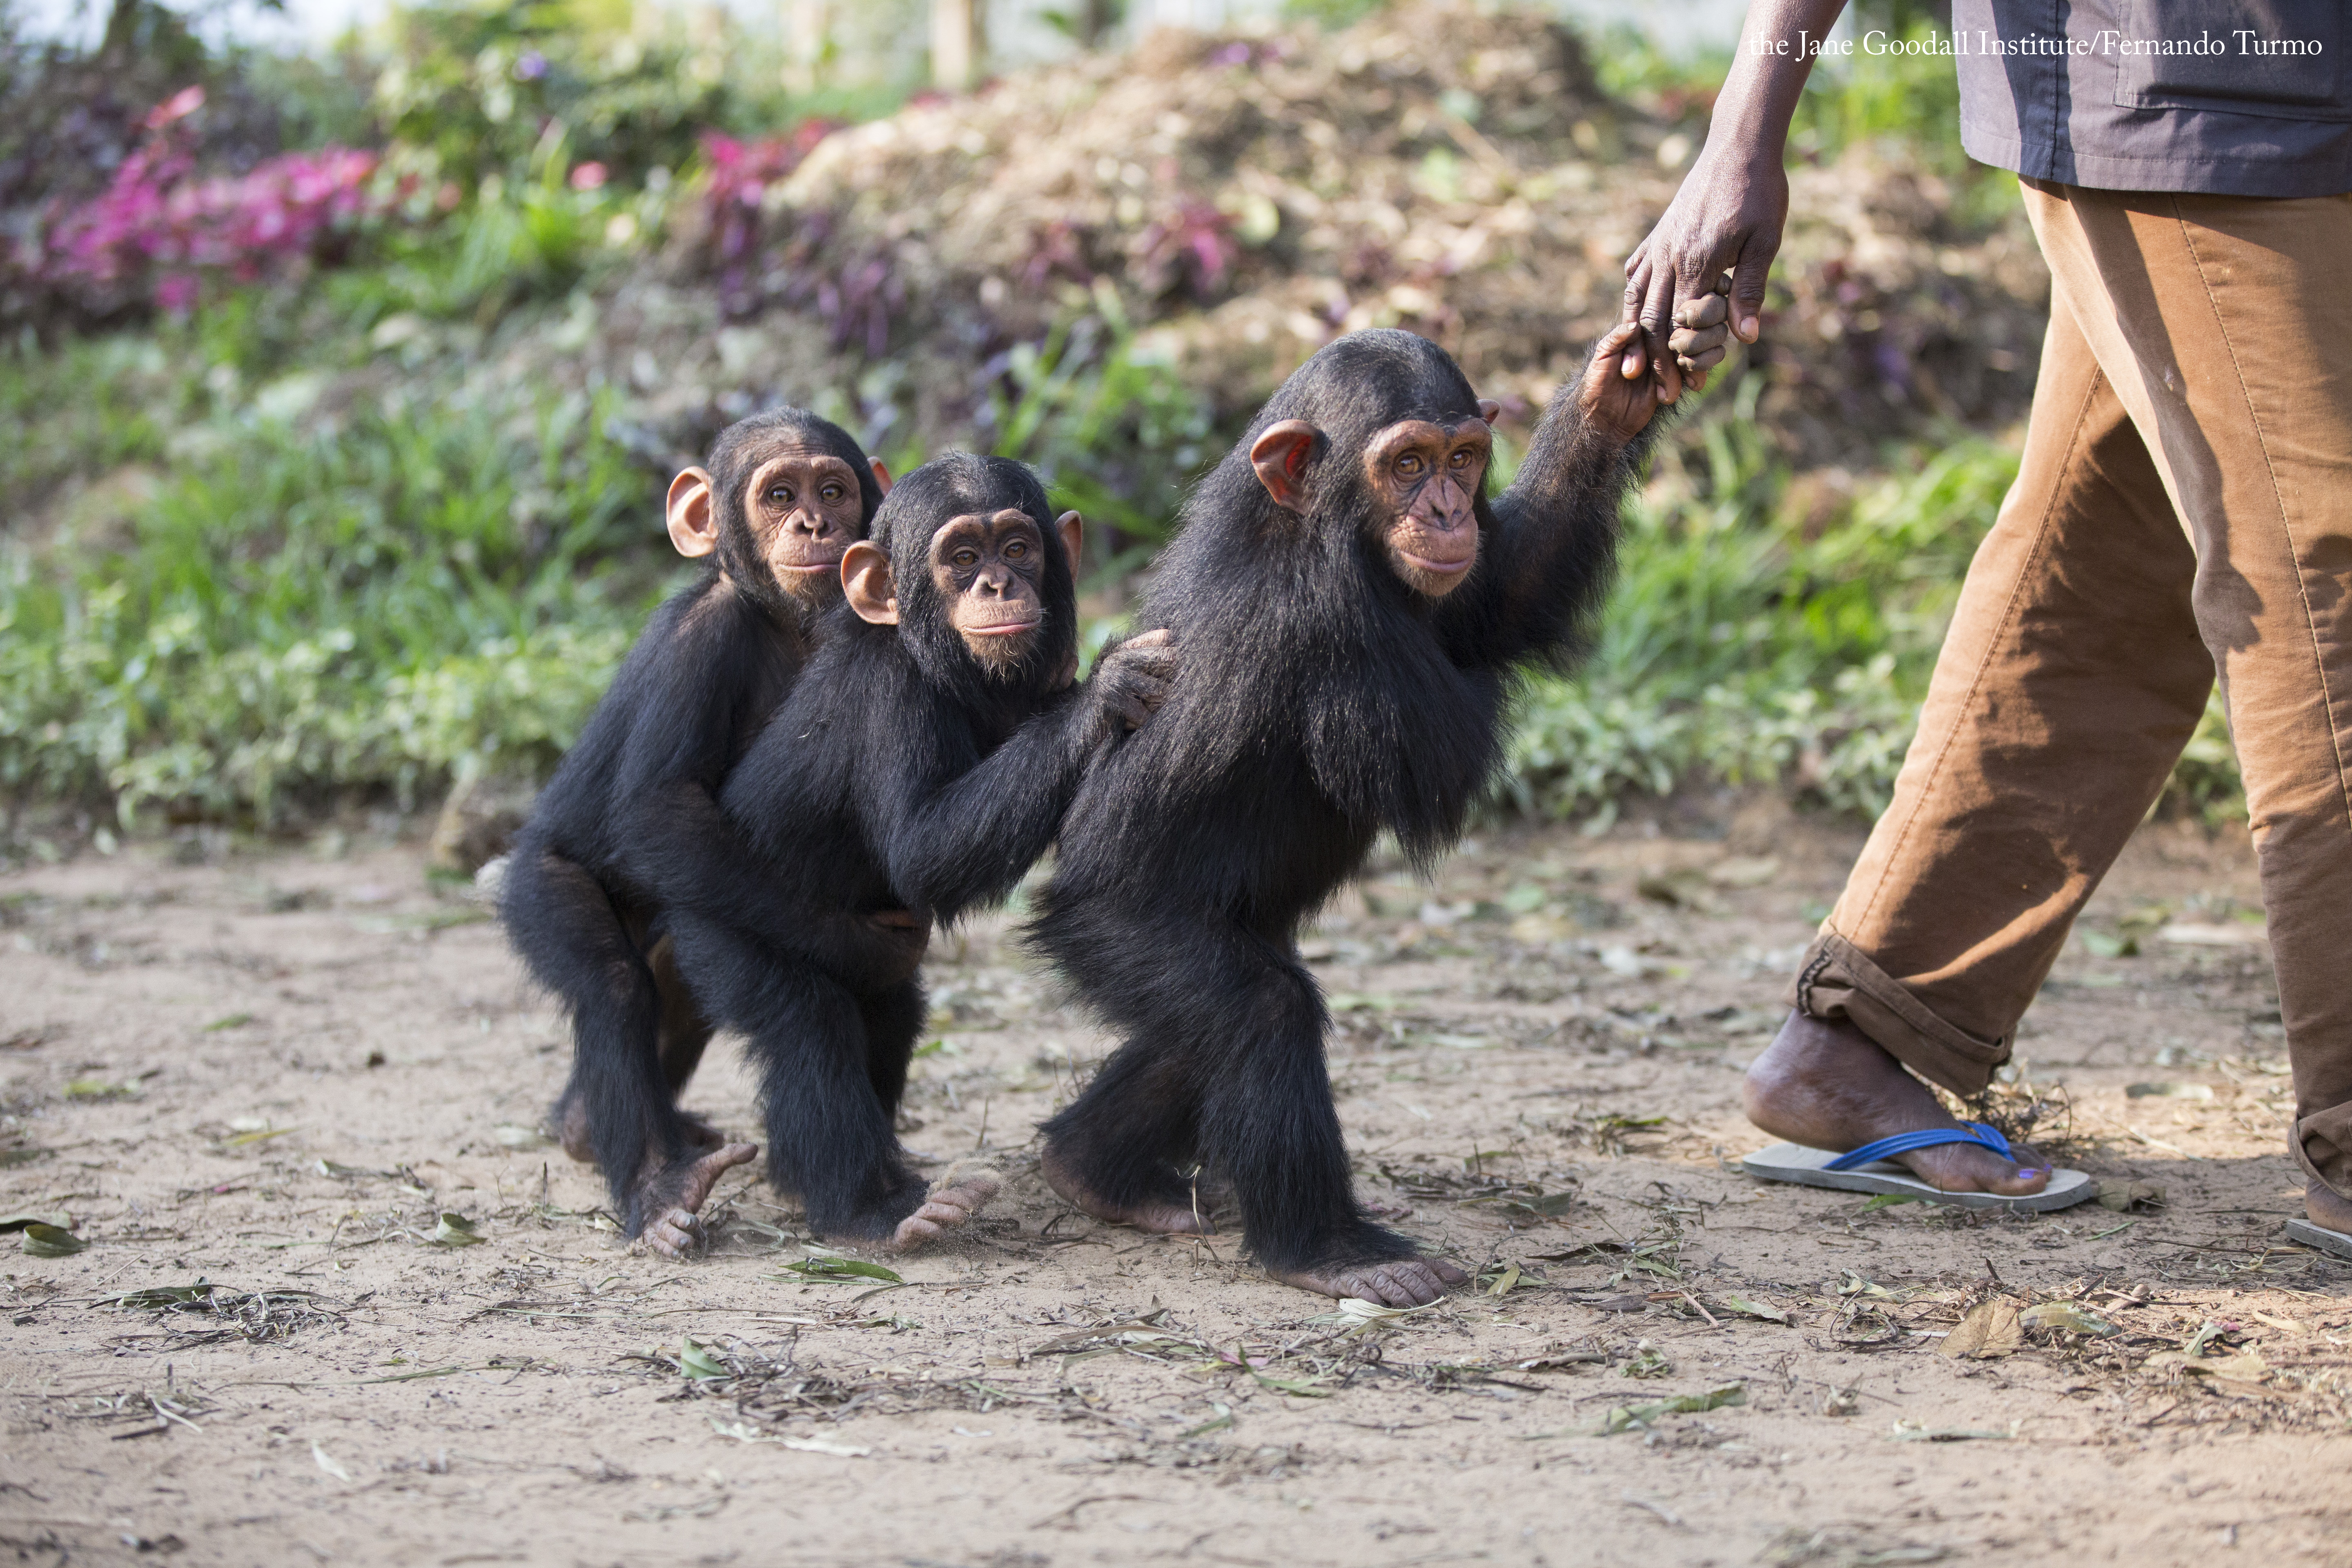 Kabi, Vienna and George. They are the youngest chimpanzees at Tchimpounga sanctuary. Always watched for JGI caregiver Antonette.